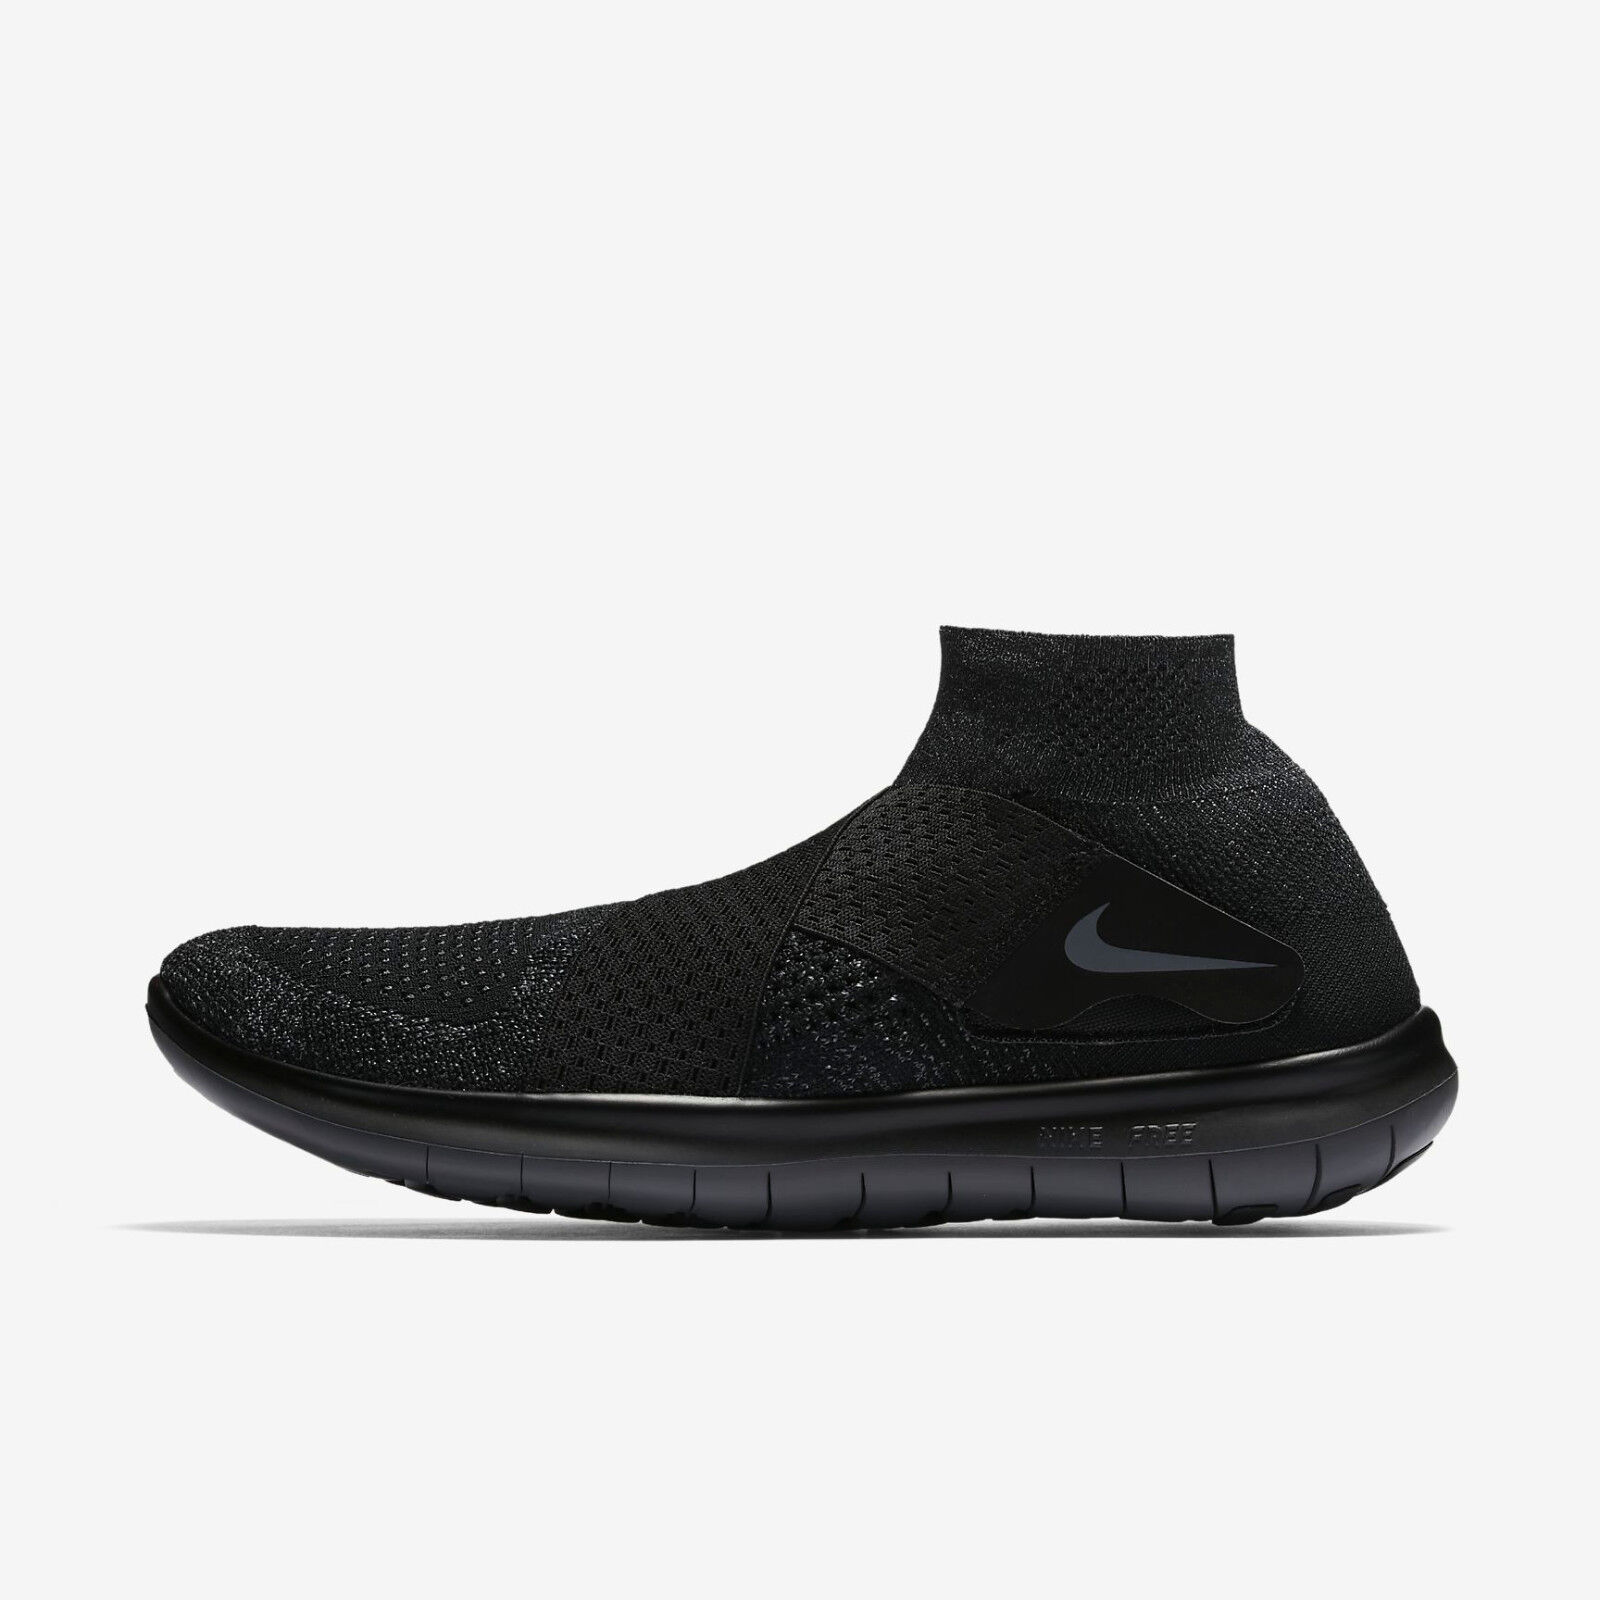 620397919dd0 Men s NIKE Free RN Motion Motion Motion FK 2017 RUNNING Shoes Sizes 7.5-14  Black (880845 003) 4bceb9